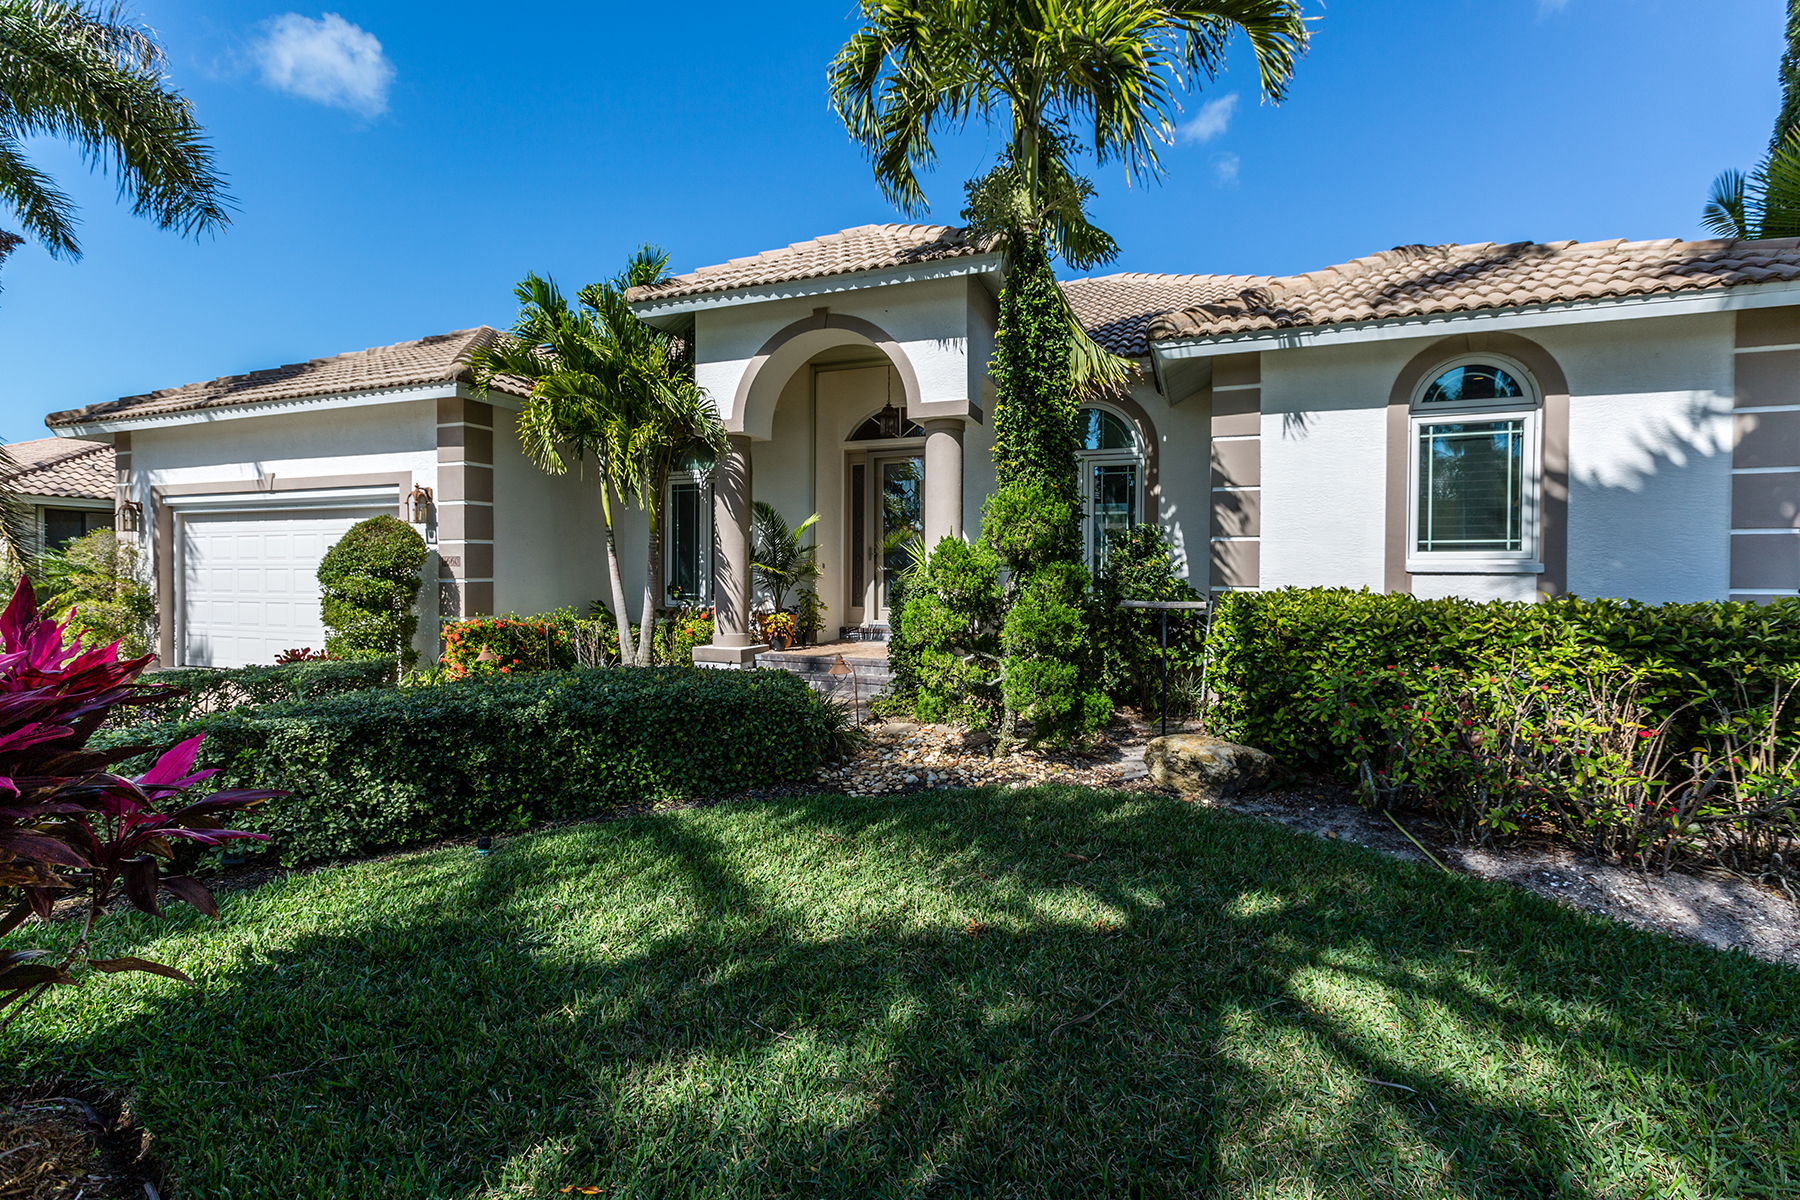 Single Family Home for Sale at MARCO ISLAND 1660 Galleon Ct, Marco Island, Florida 34145 United States